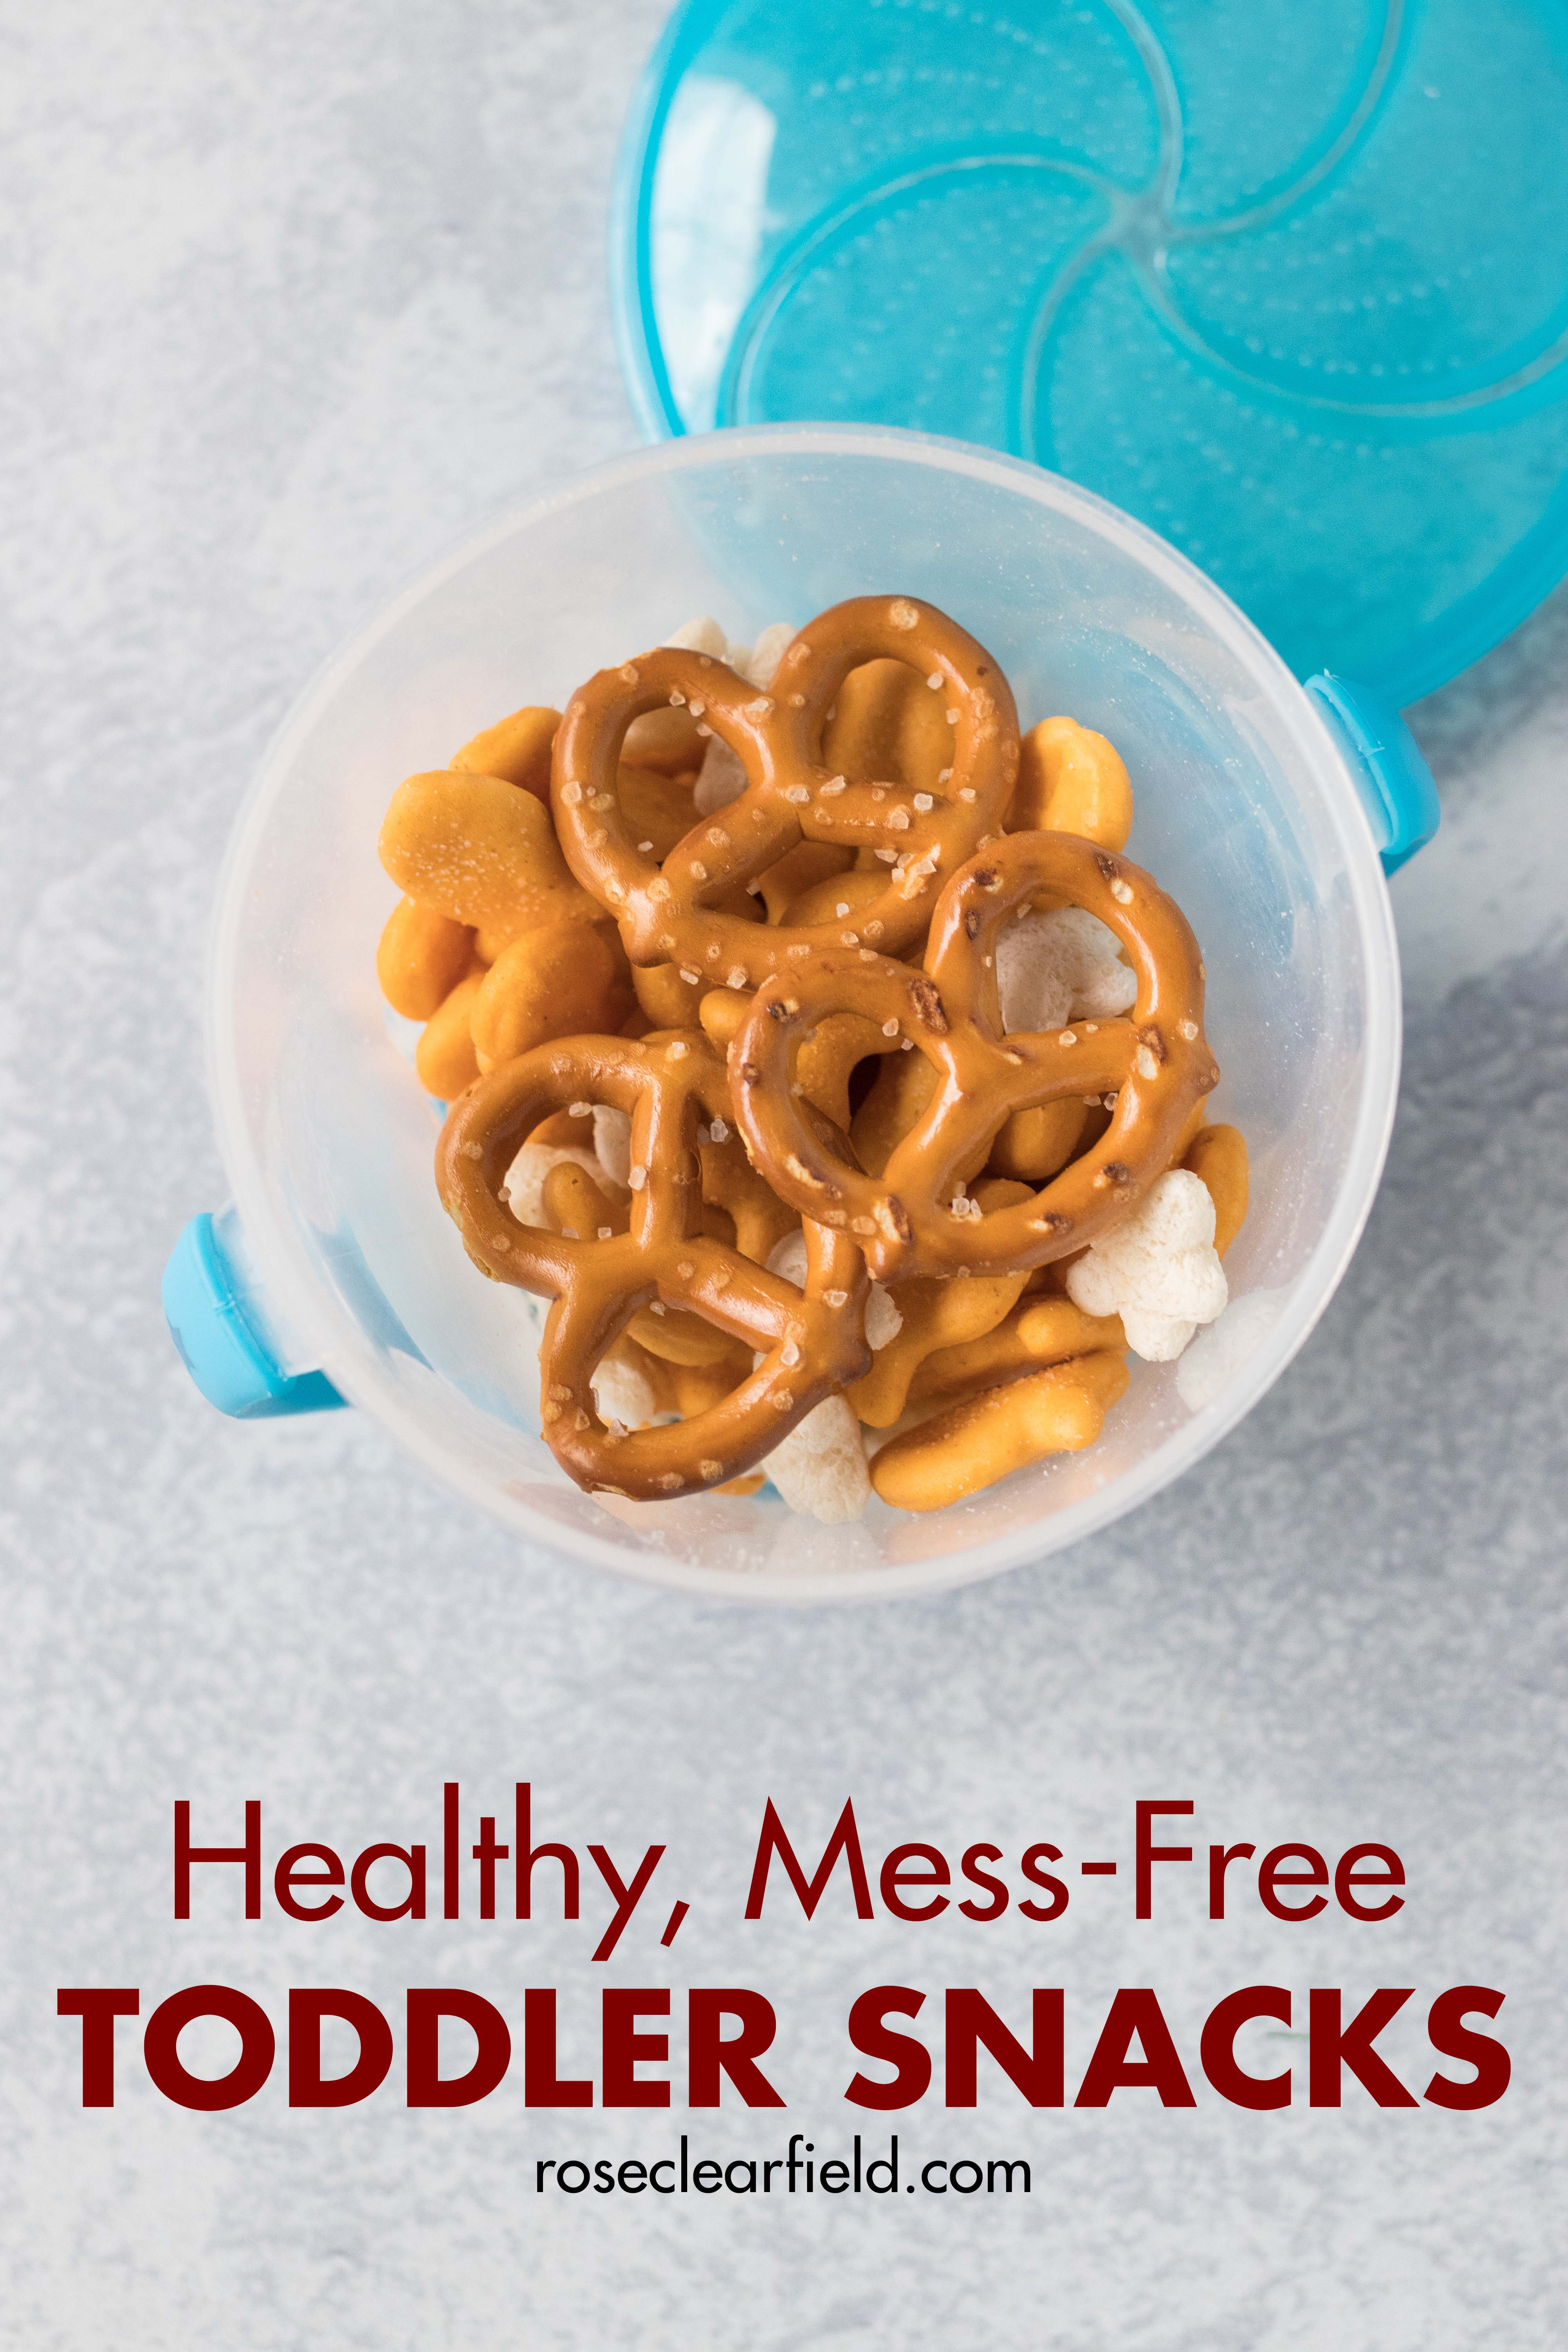 Healthy, mess-free toddler snacks. Perfect for feeding little ones at the park, in the car, at friends' houses, and anywhere on the go! #toddlersnacks #toddlerlife #healthysnackideas | https://www.roseclearfield.com